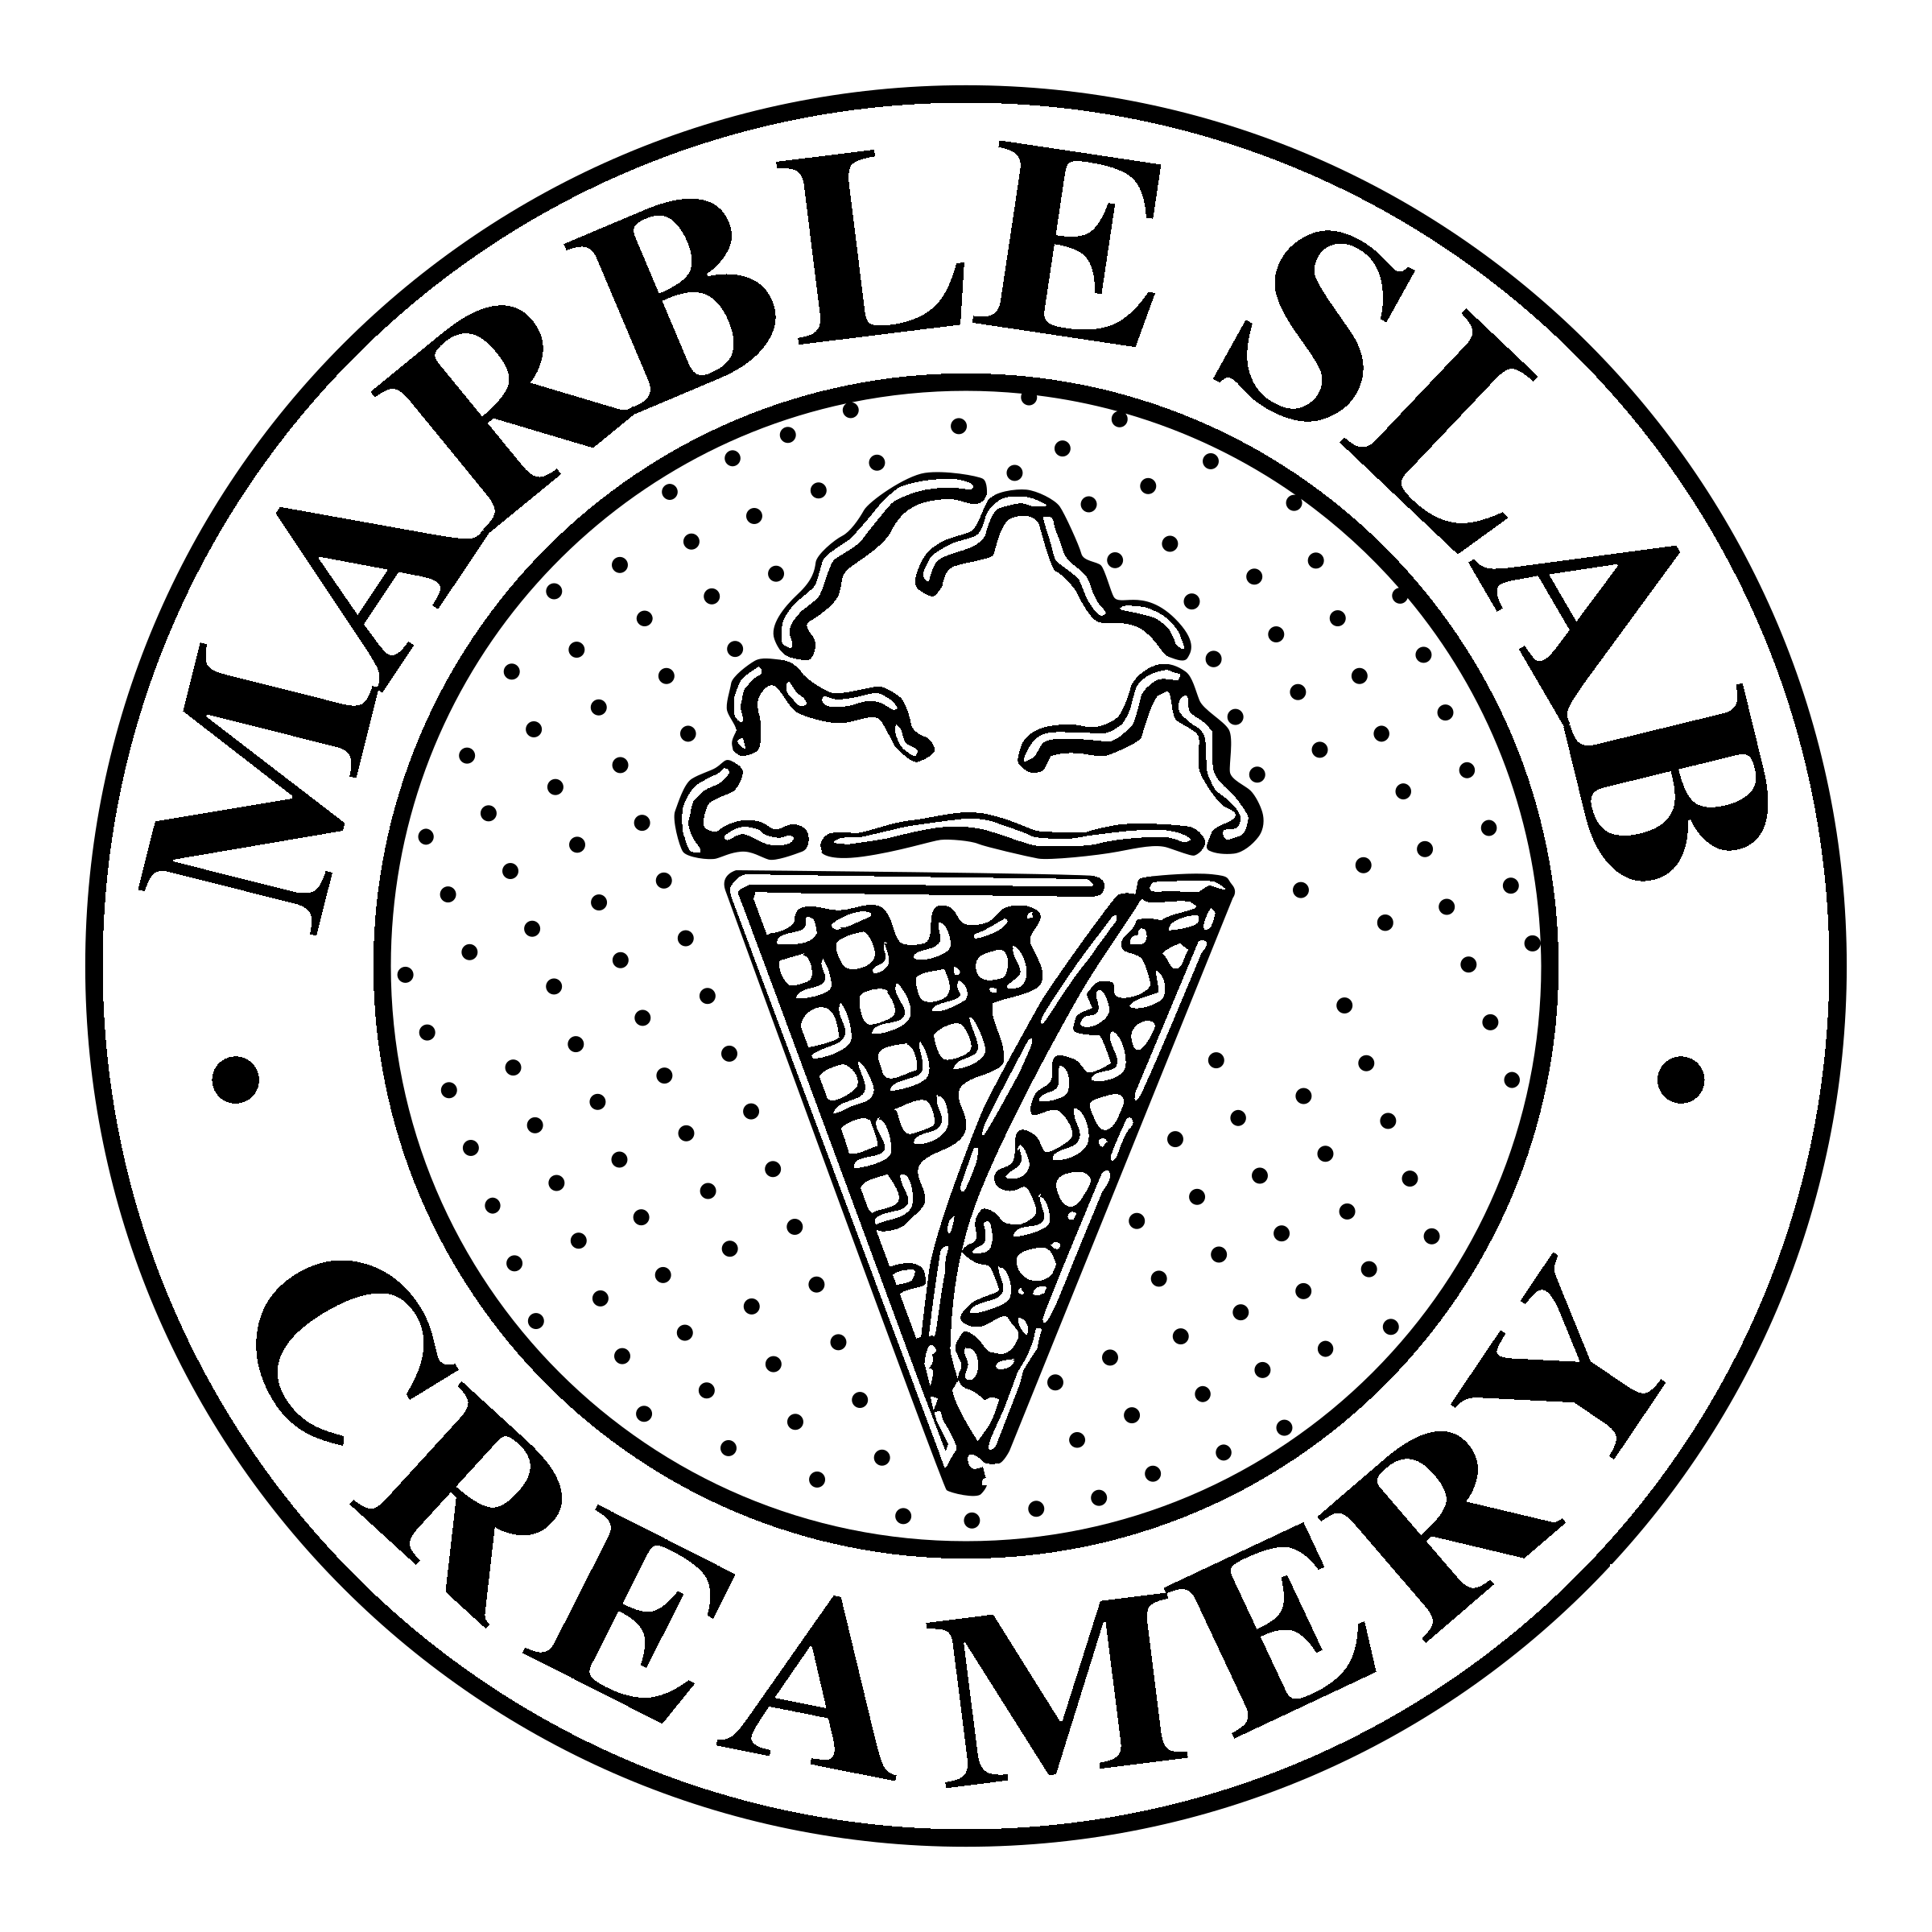 Logo for Slab Happy Rewards, the loyalty program of Marble Slab Creamery.